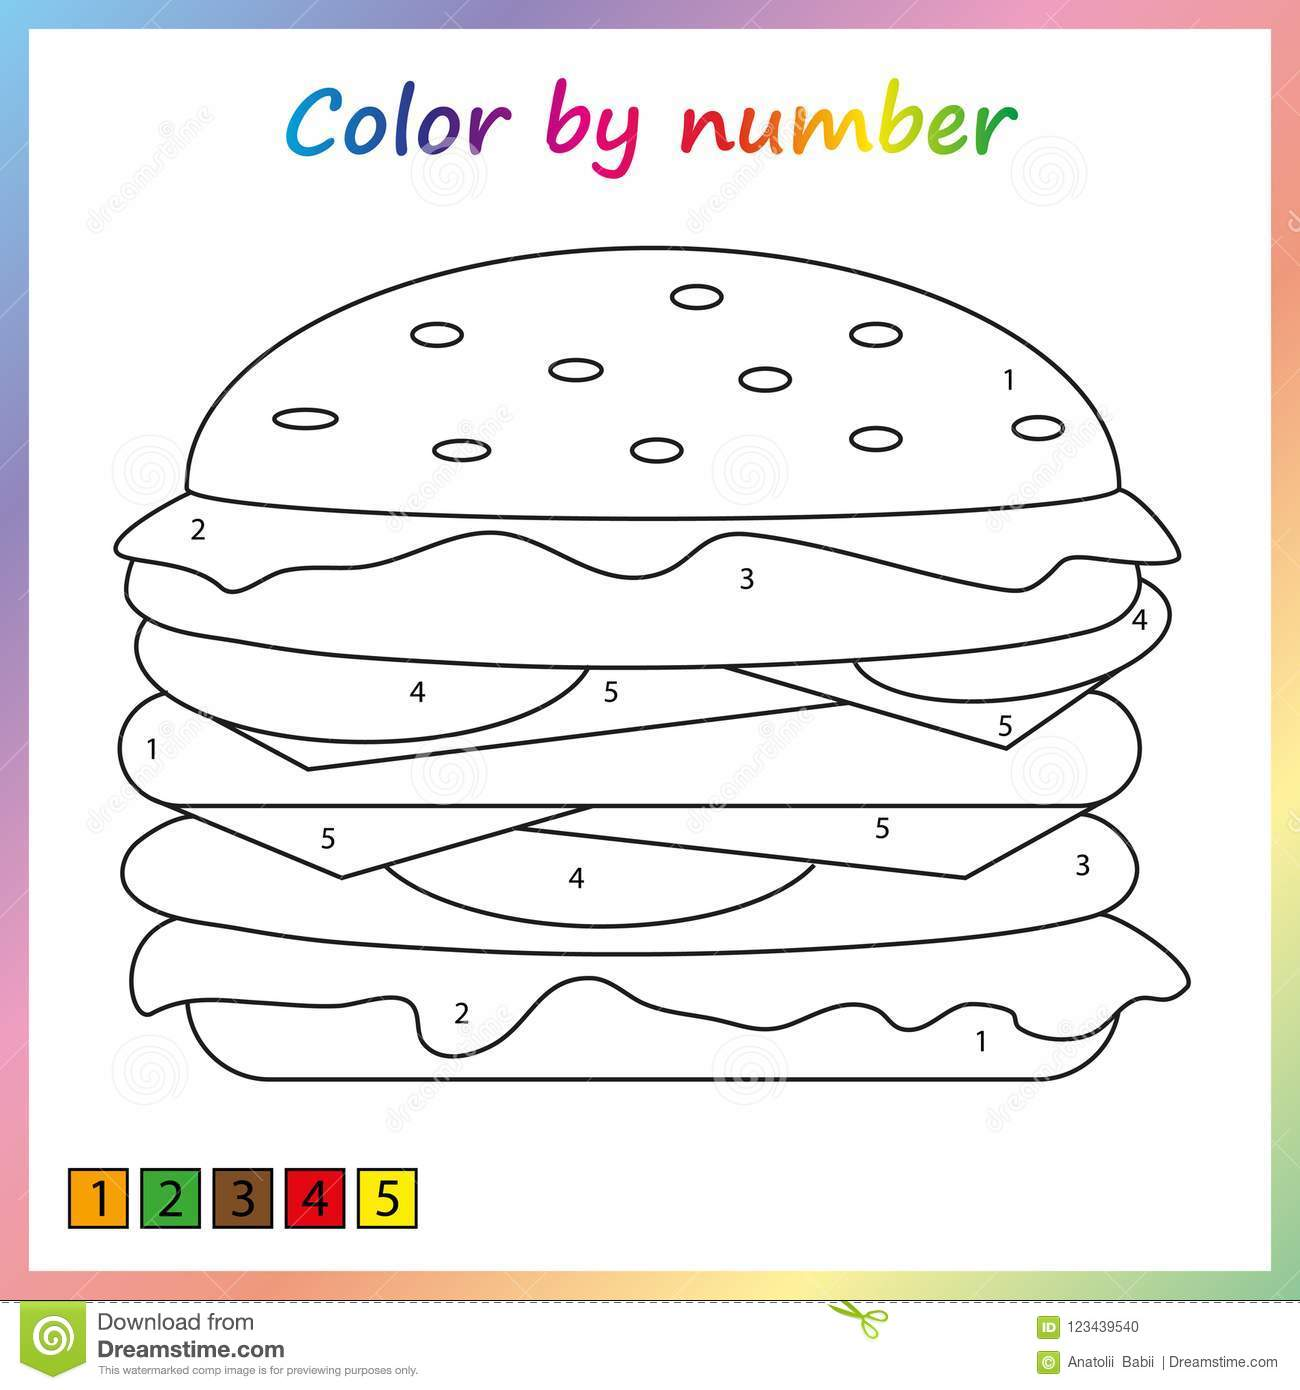 Worksheet For Education  Painting Page, Color By Numbers  Game For